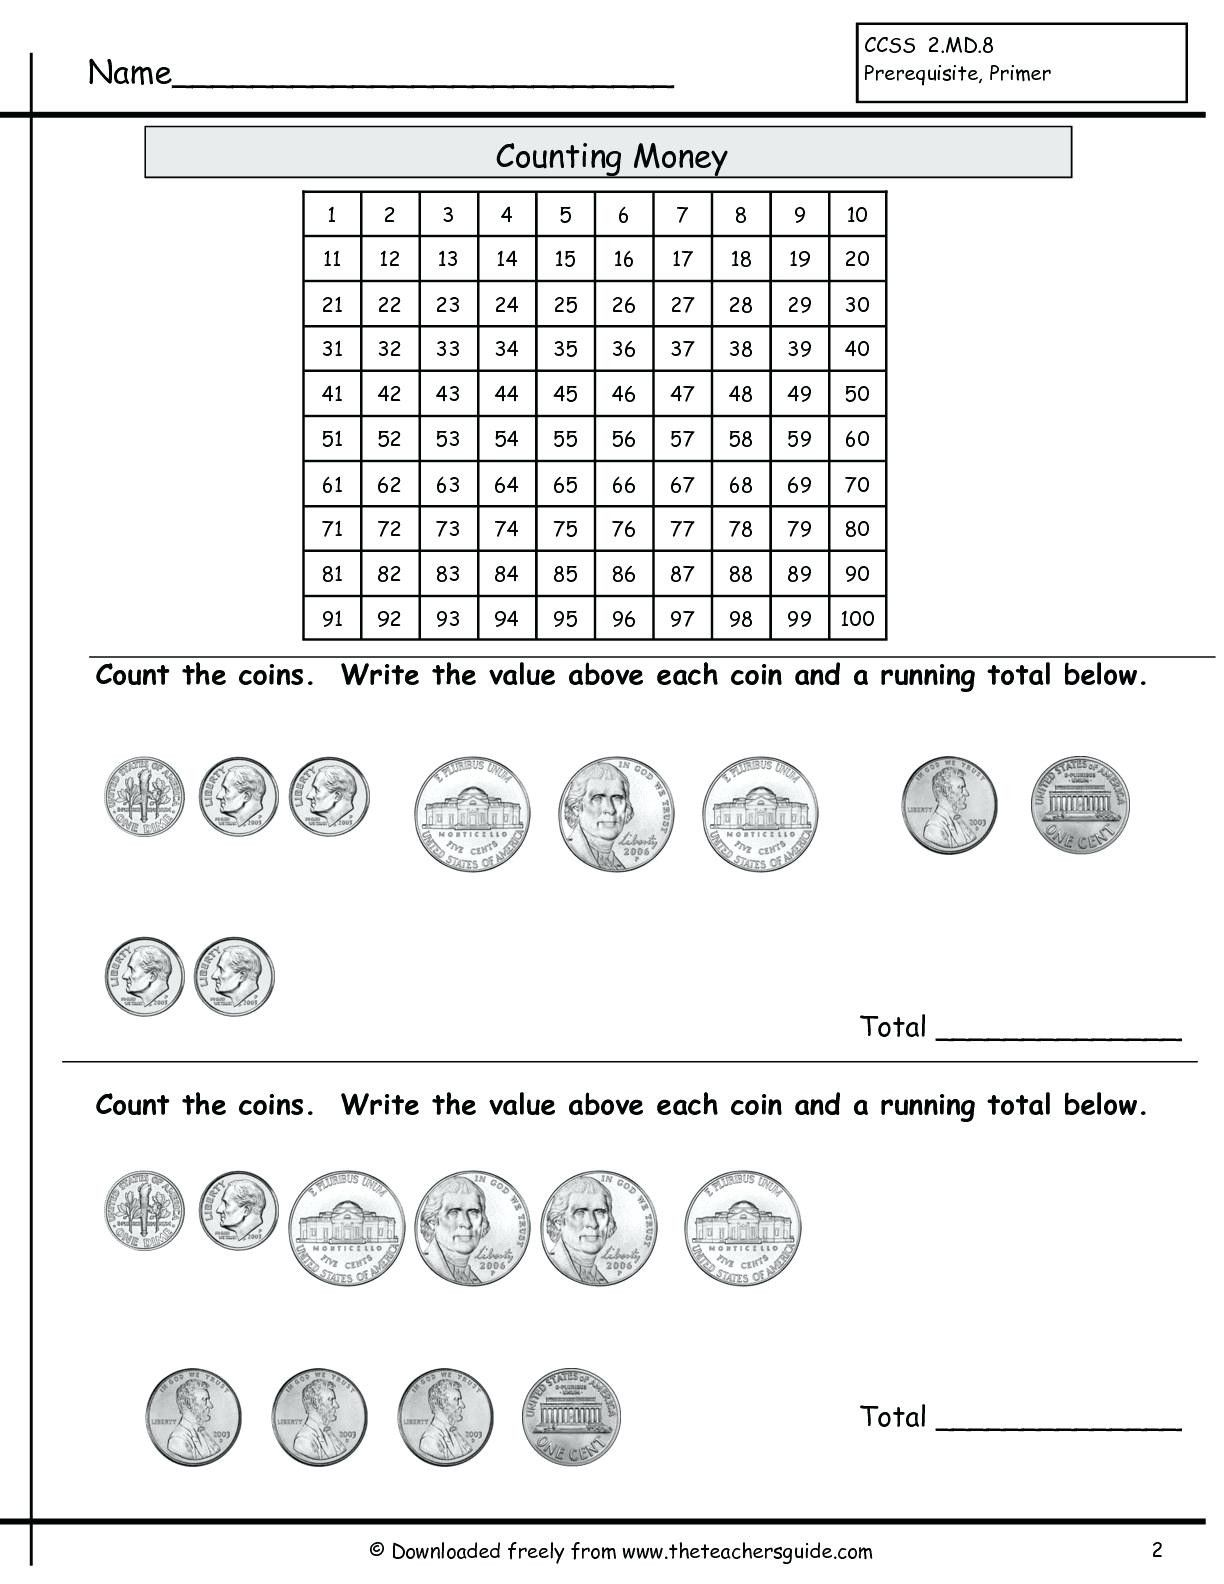 3 Free Math Worksheets Second Grade 2 Measurement Metric Units Length Cm M Identifying Coins 2nd Grade Math Worksheets Math Worksheets Money Math Worksheets [ 1584 x 1224 Pixel ]